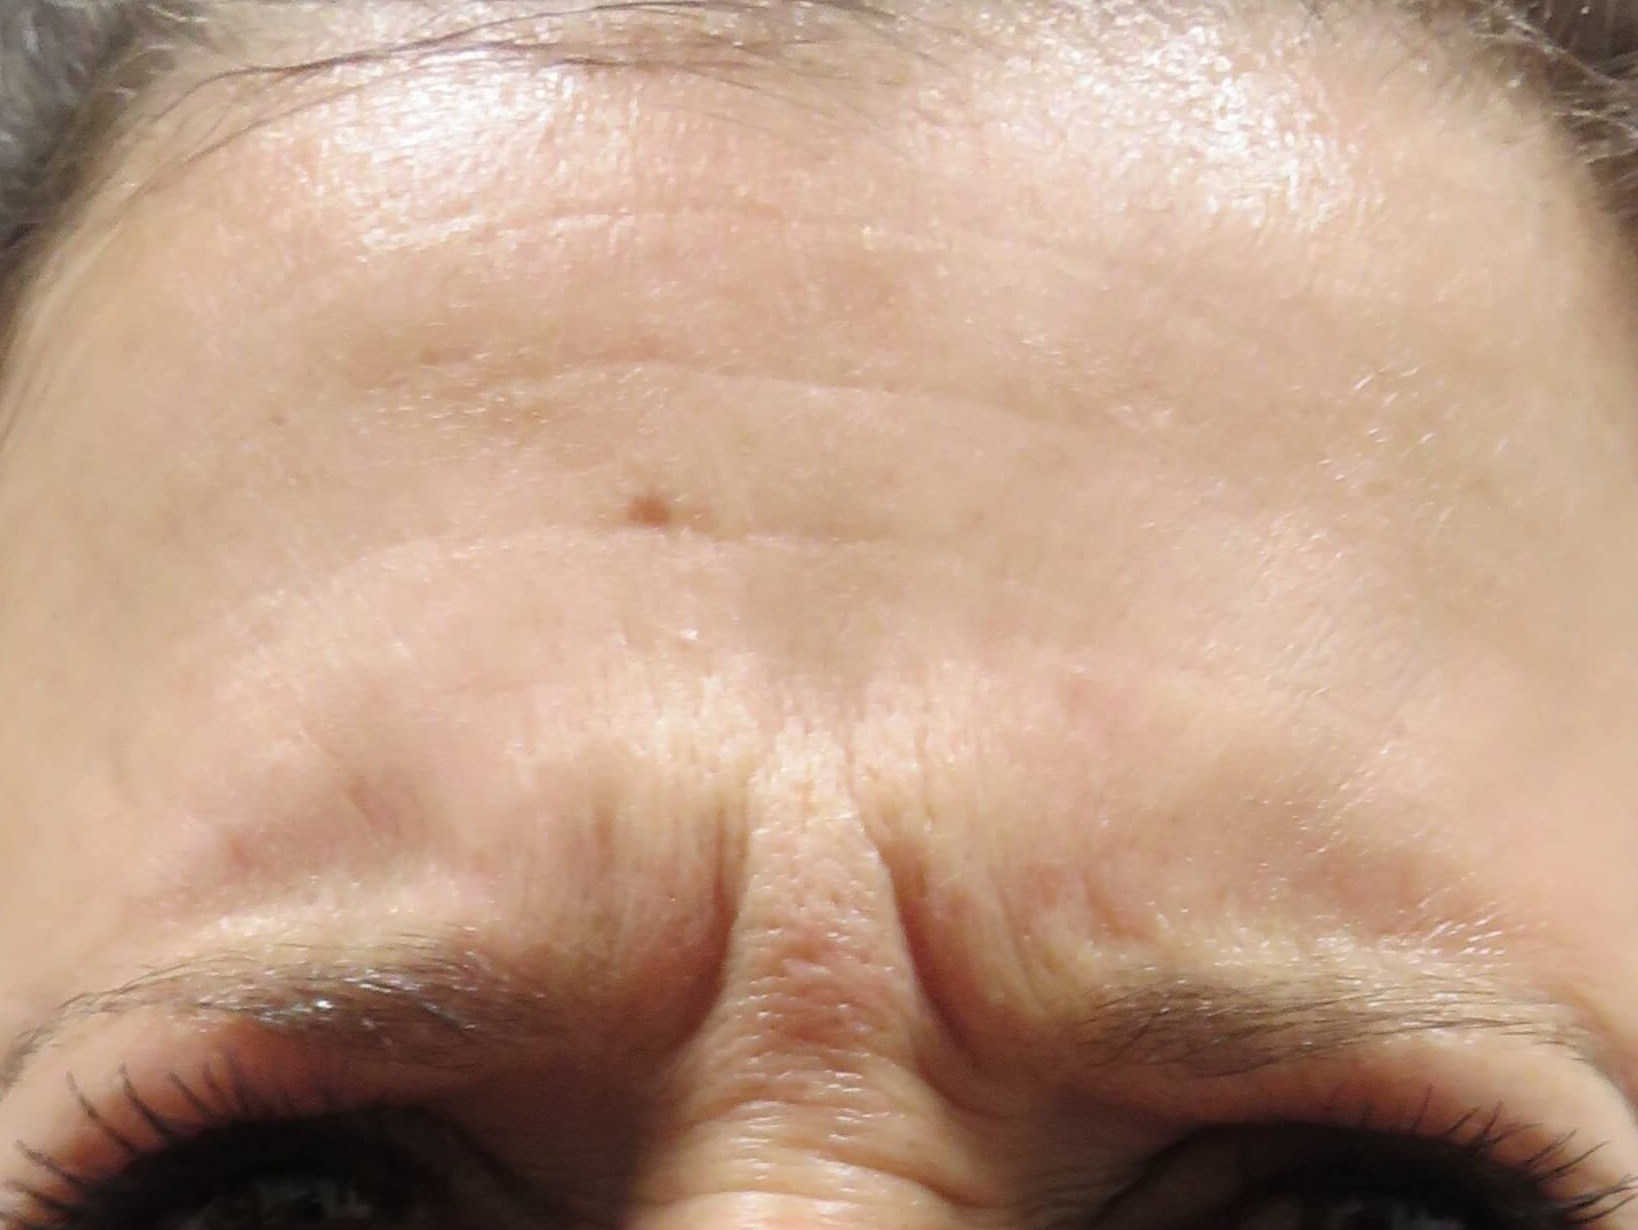 Dysport in Forehead by Dr. Lee Before Dysport Injections